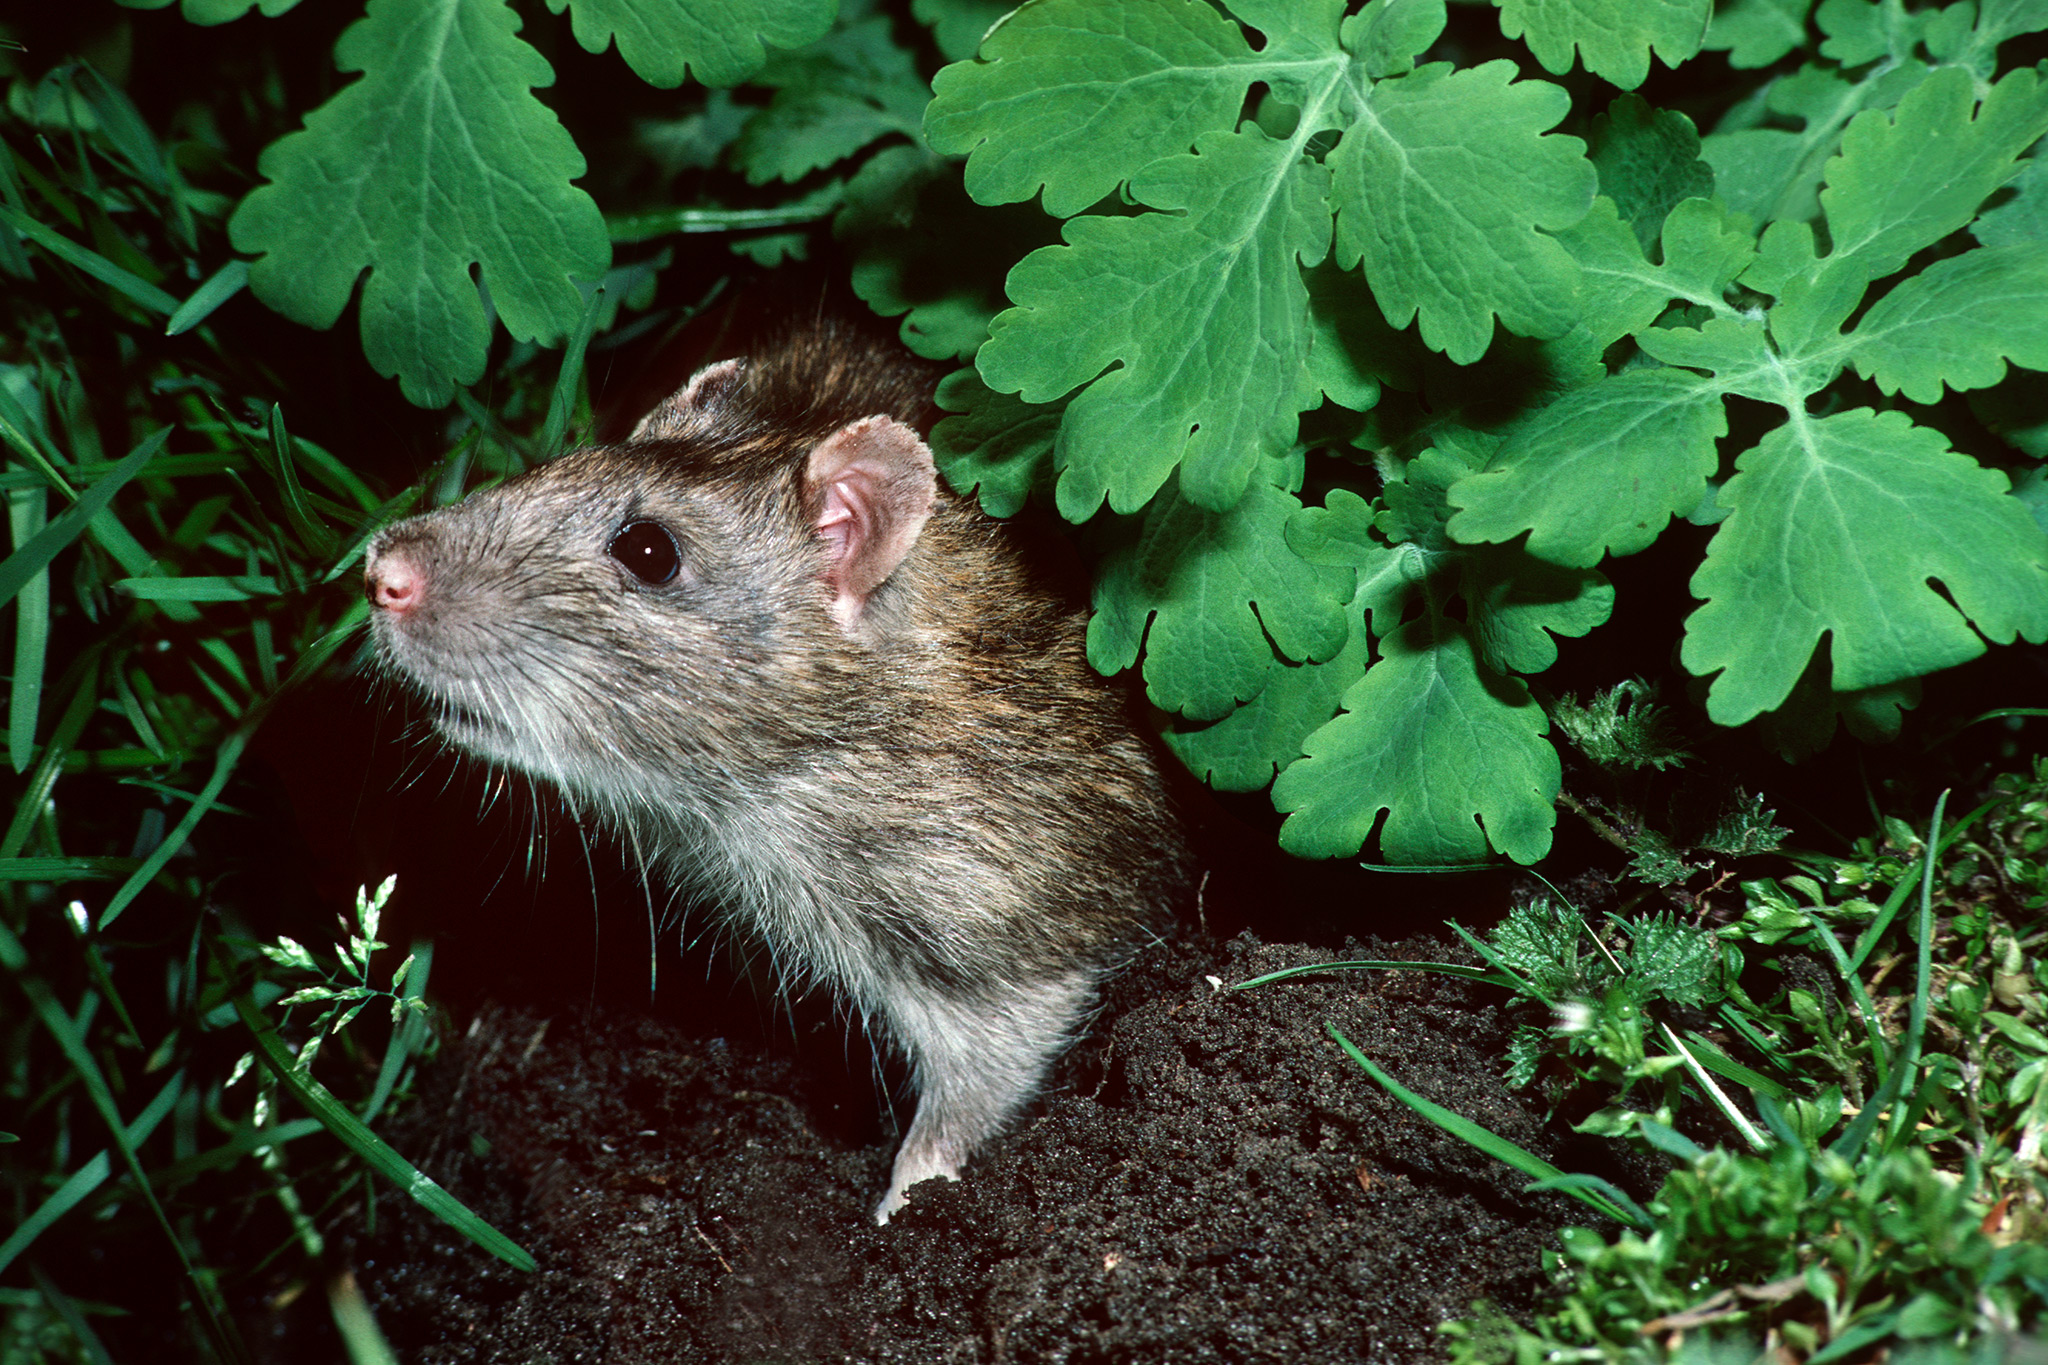 Rat in the garden. Credit: Getty Images